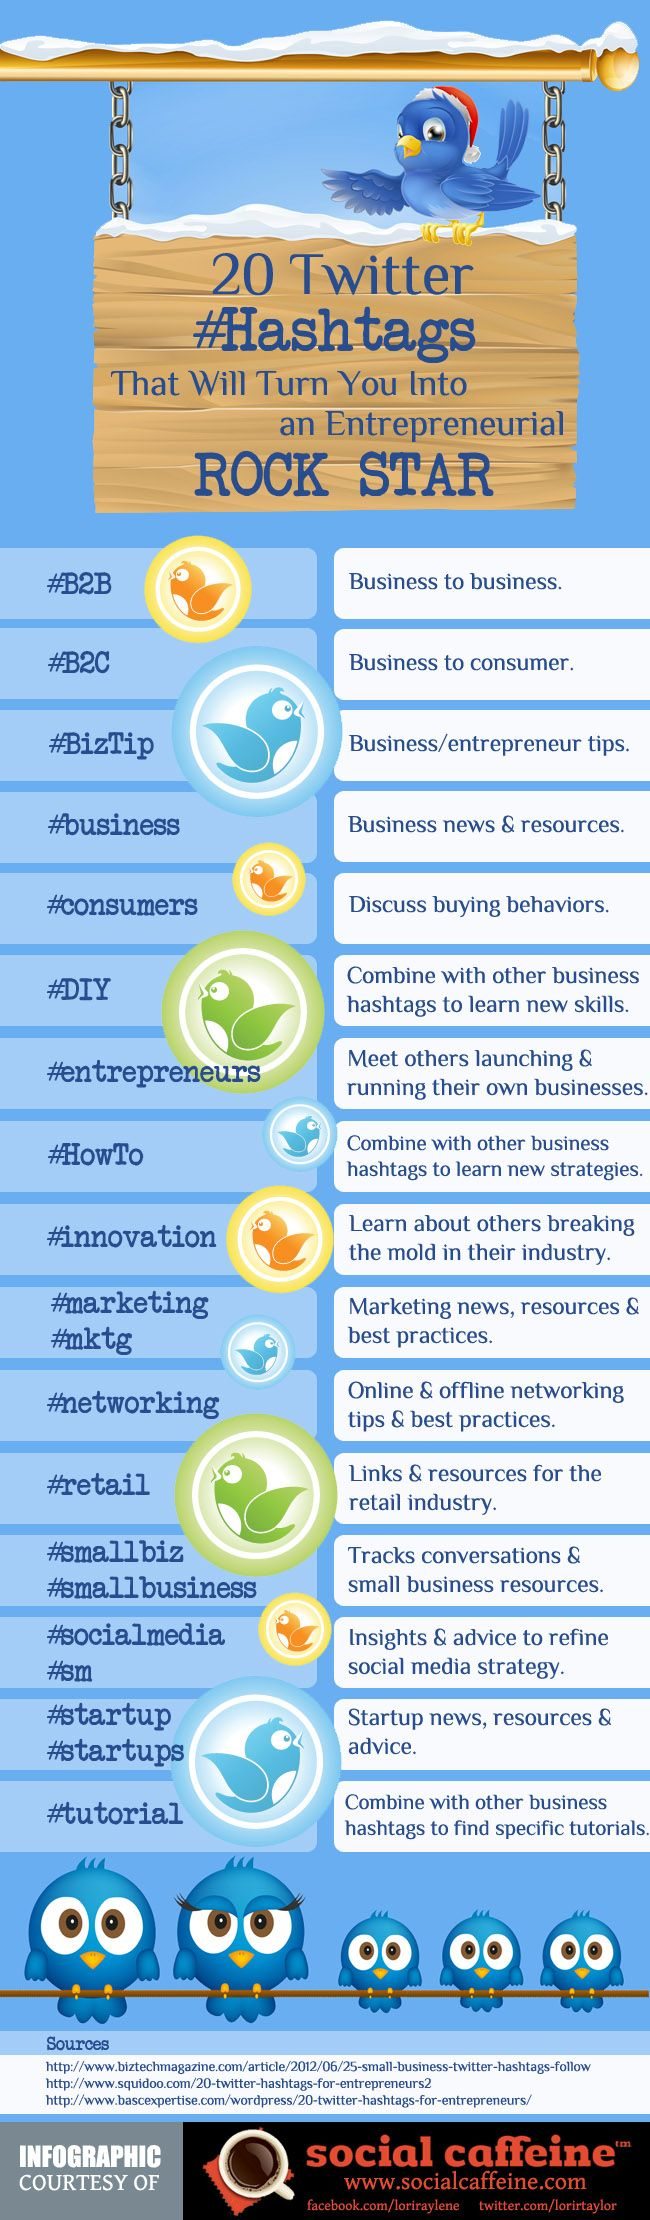 20 Twitter Hashtags That Will Turn You Into an Entrepreneurial Rock Star (Infographic)